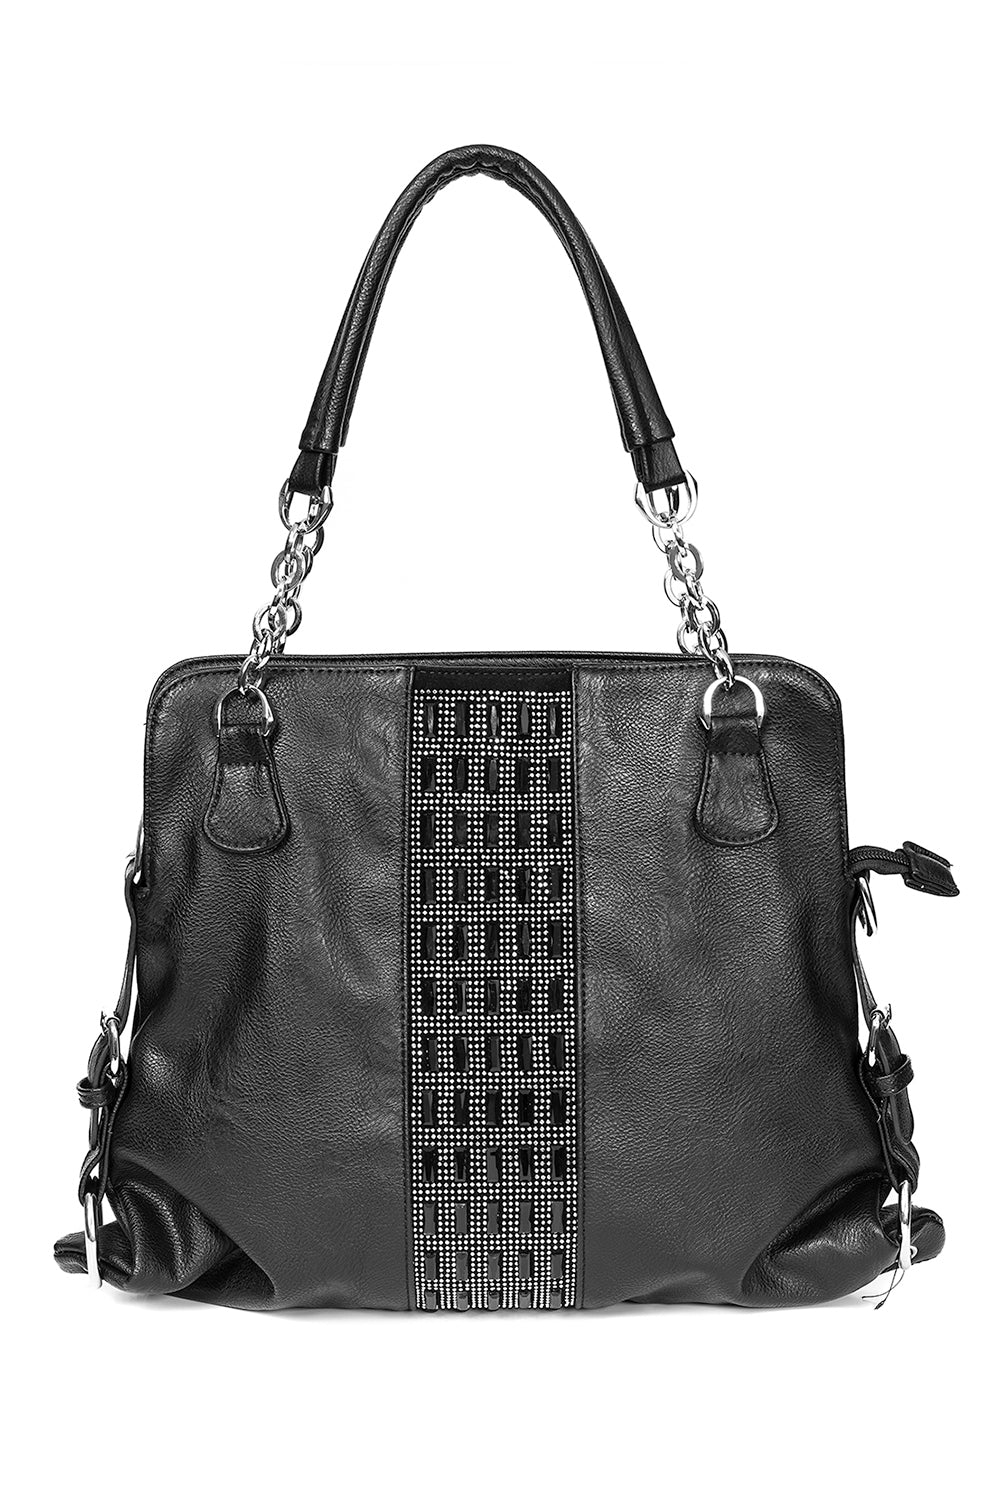 Type 4 Eclipse Handbag